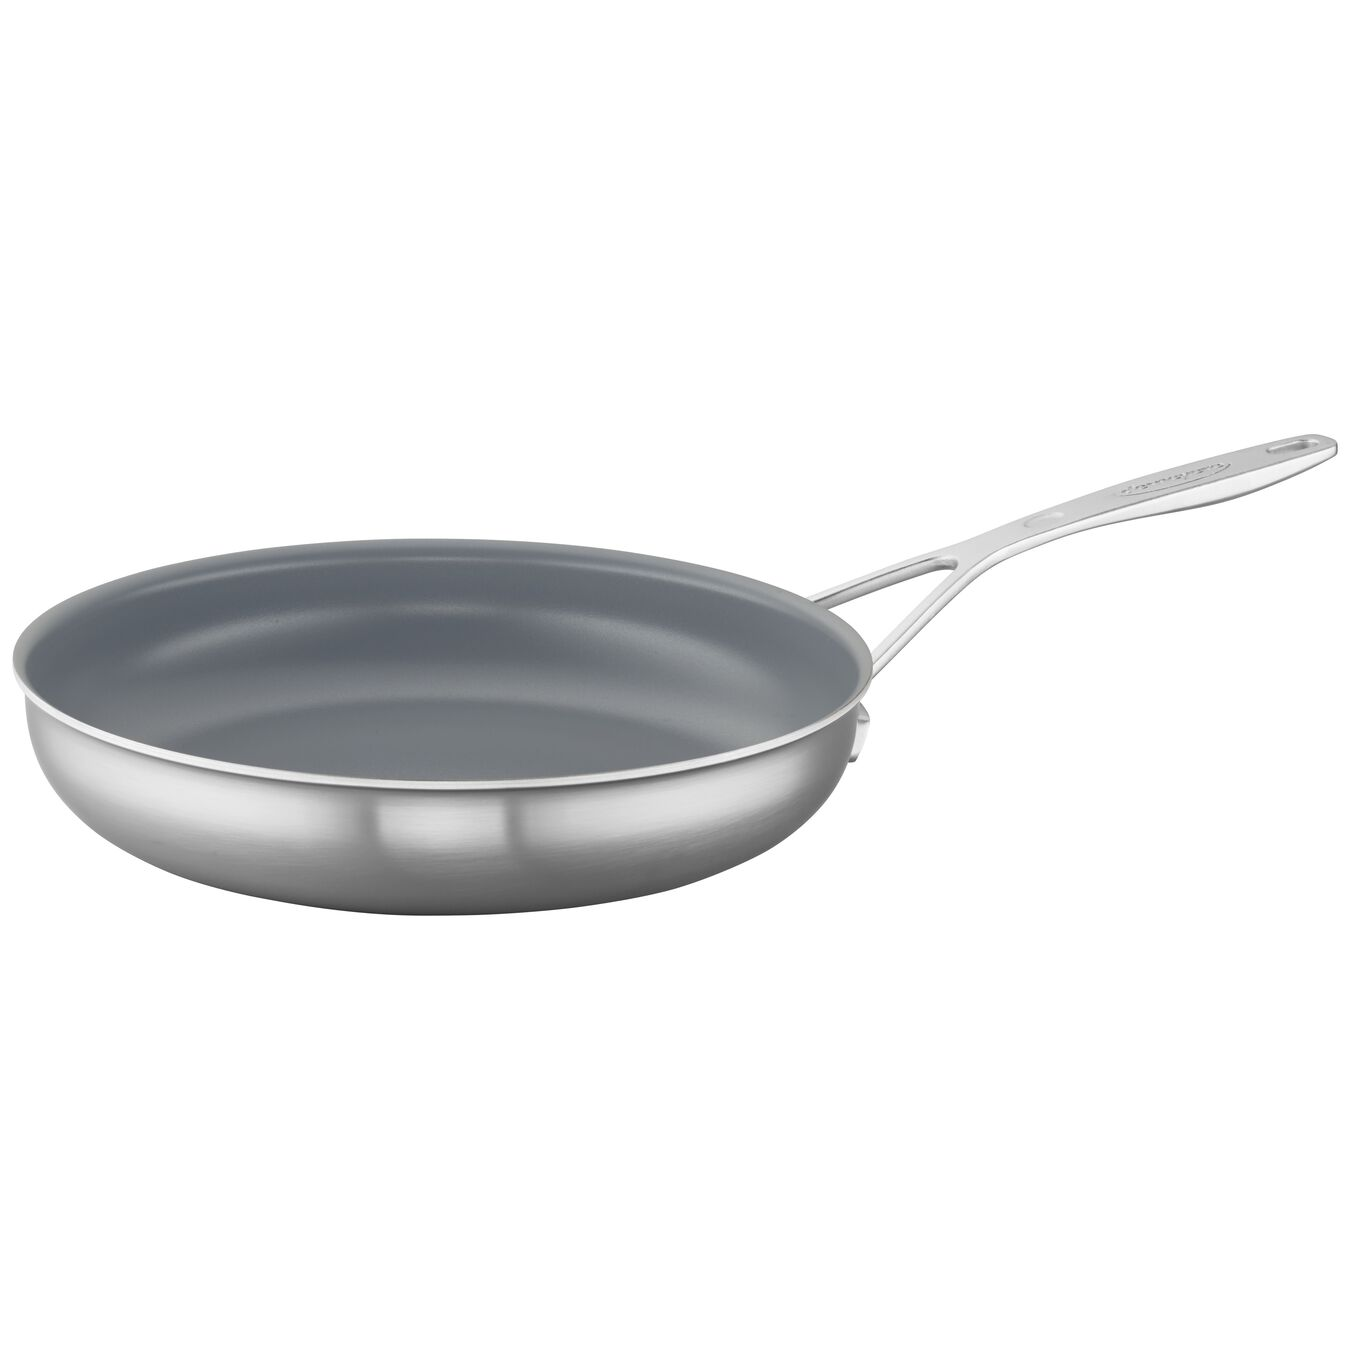 11-inch, 18/10 Stainless Steel, Ceramic, Frying pan,,large 2